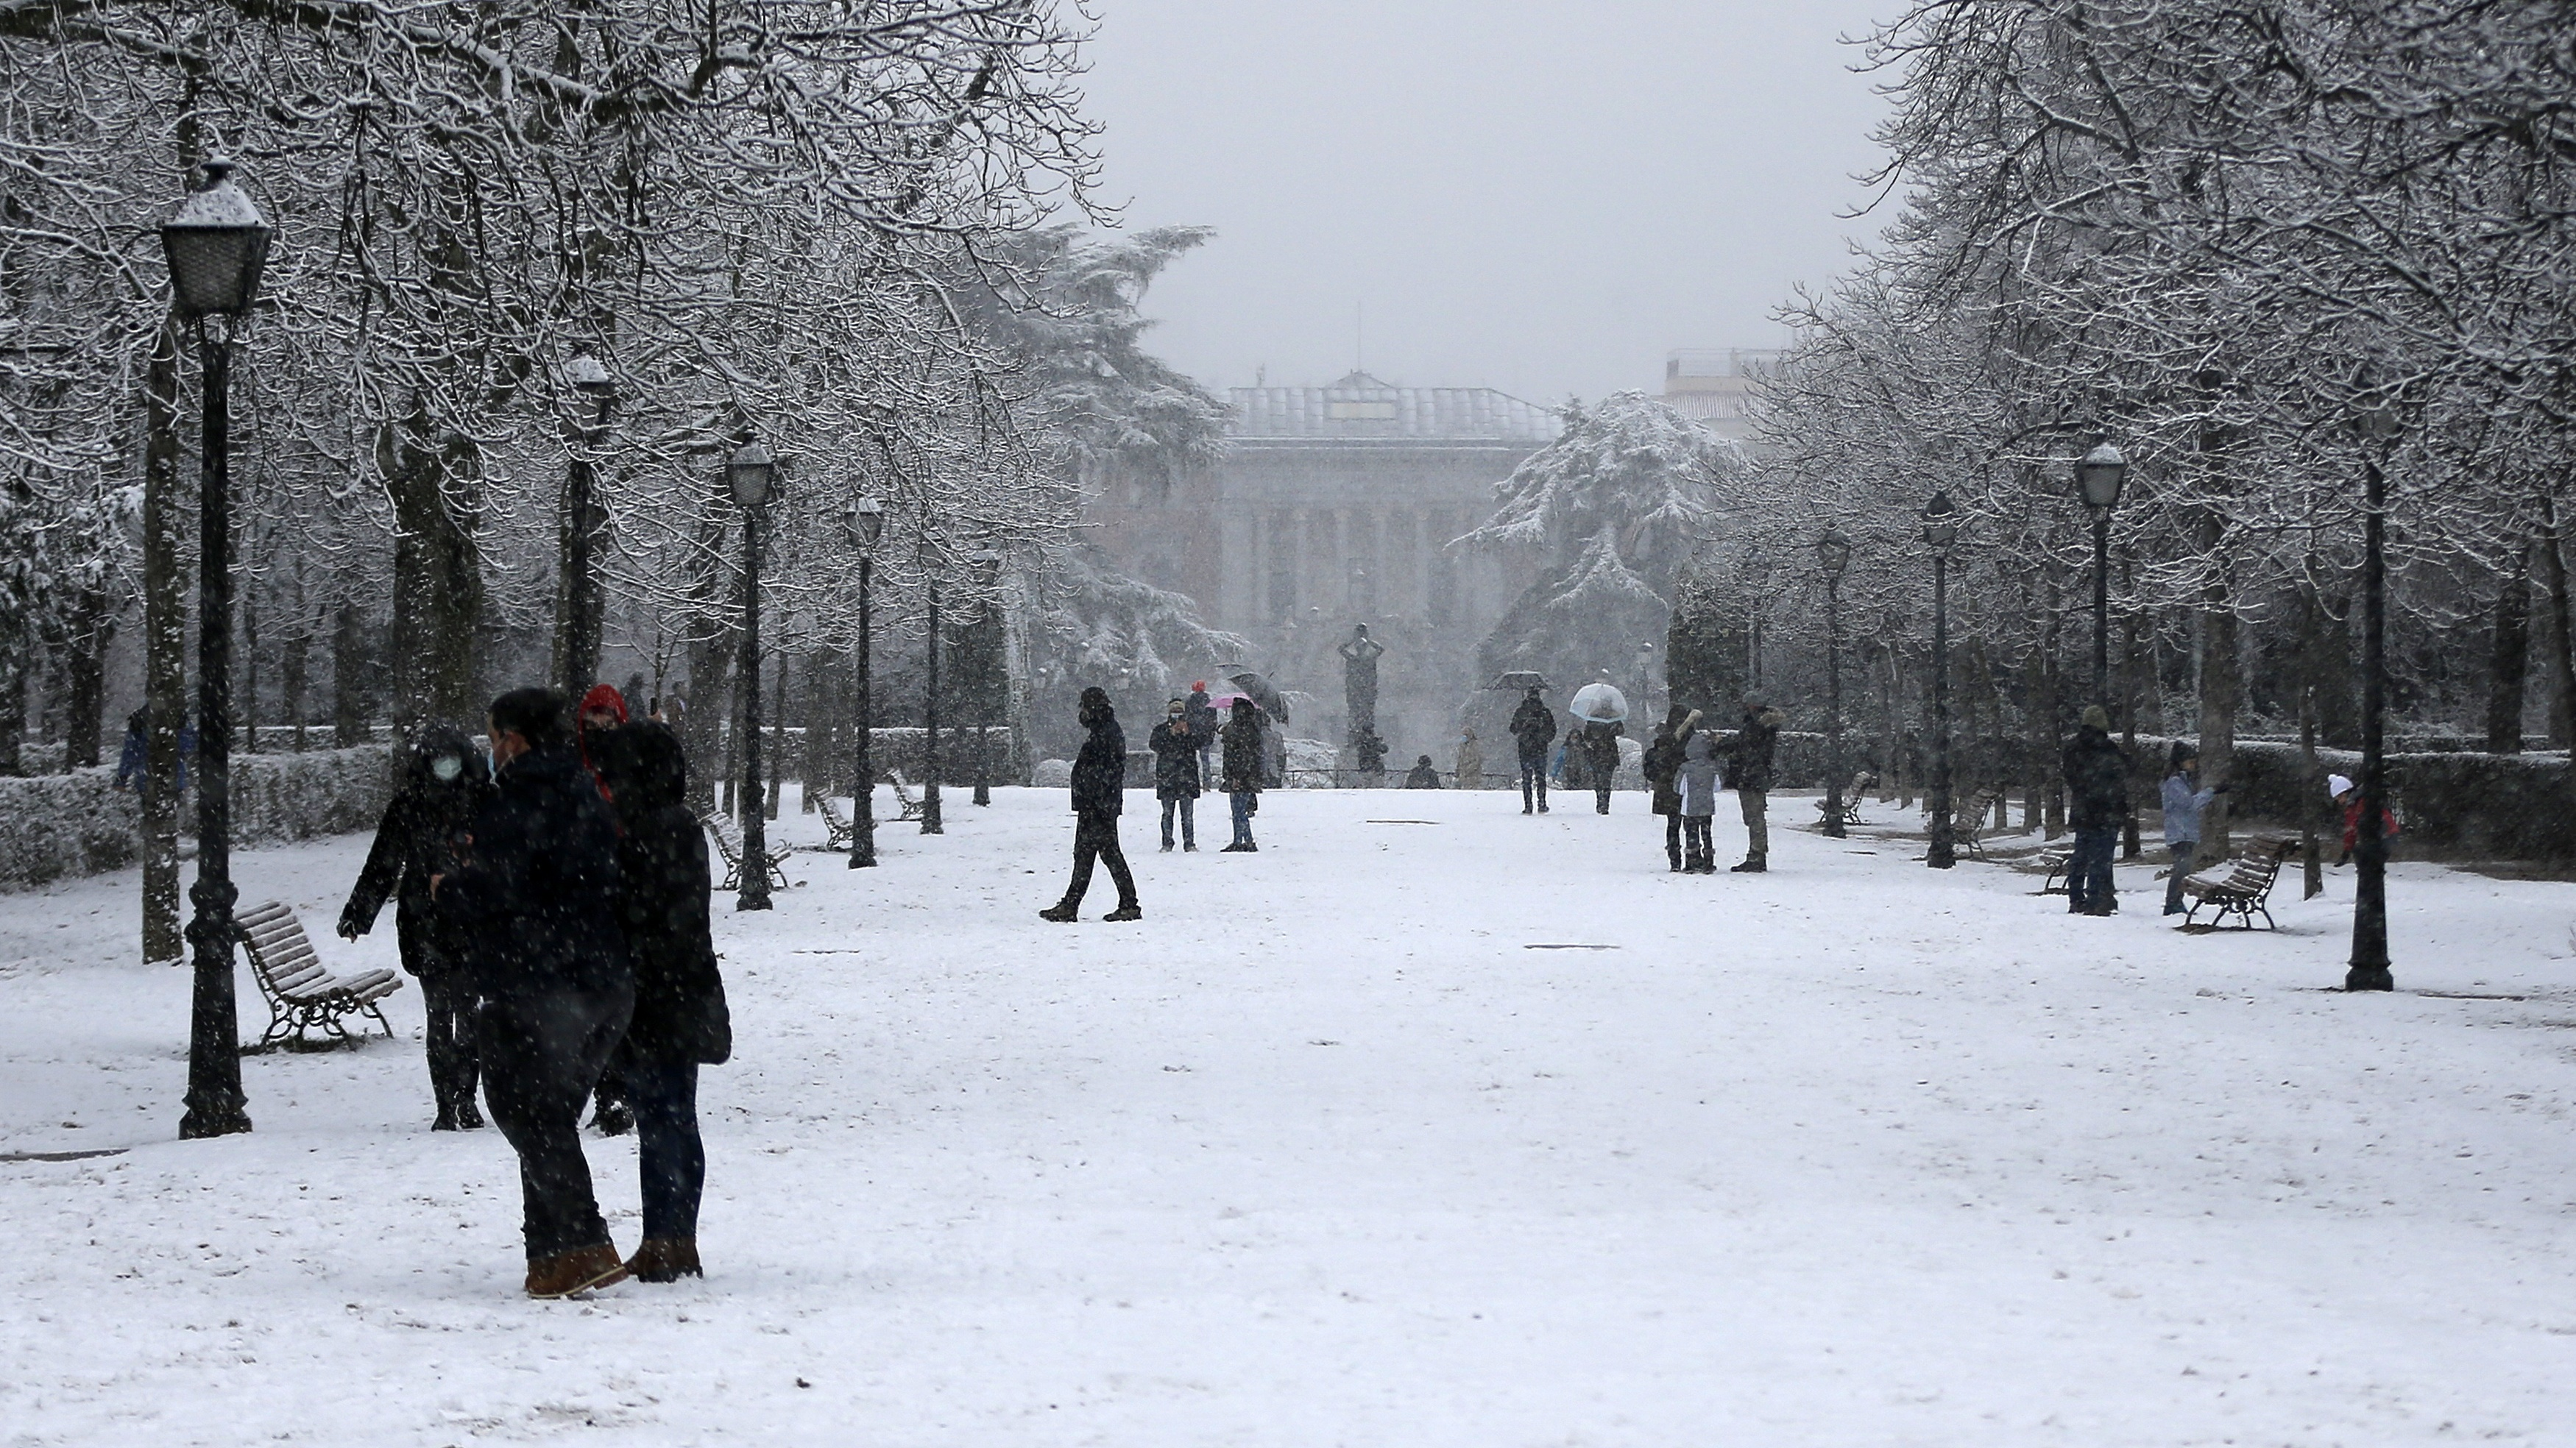 Spain buried under snow as temperature hits record low